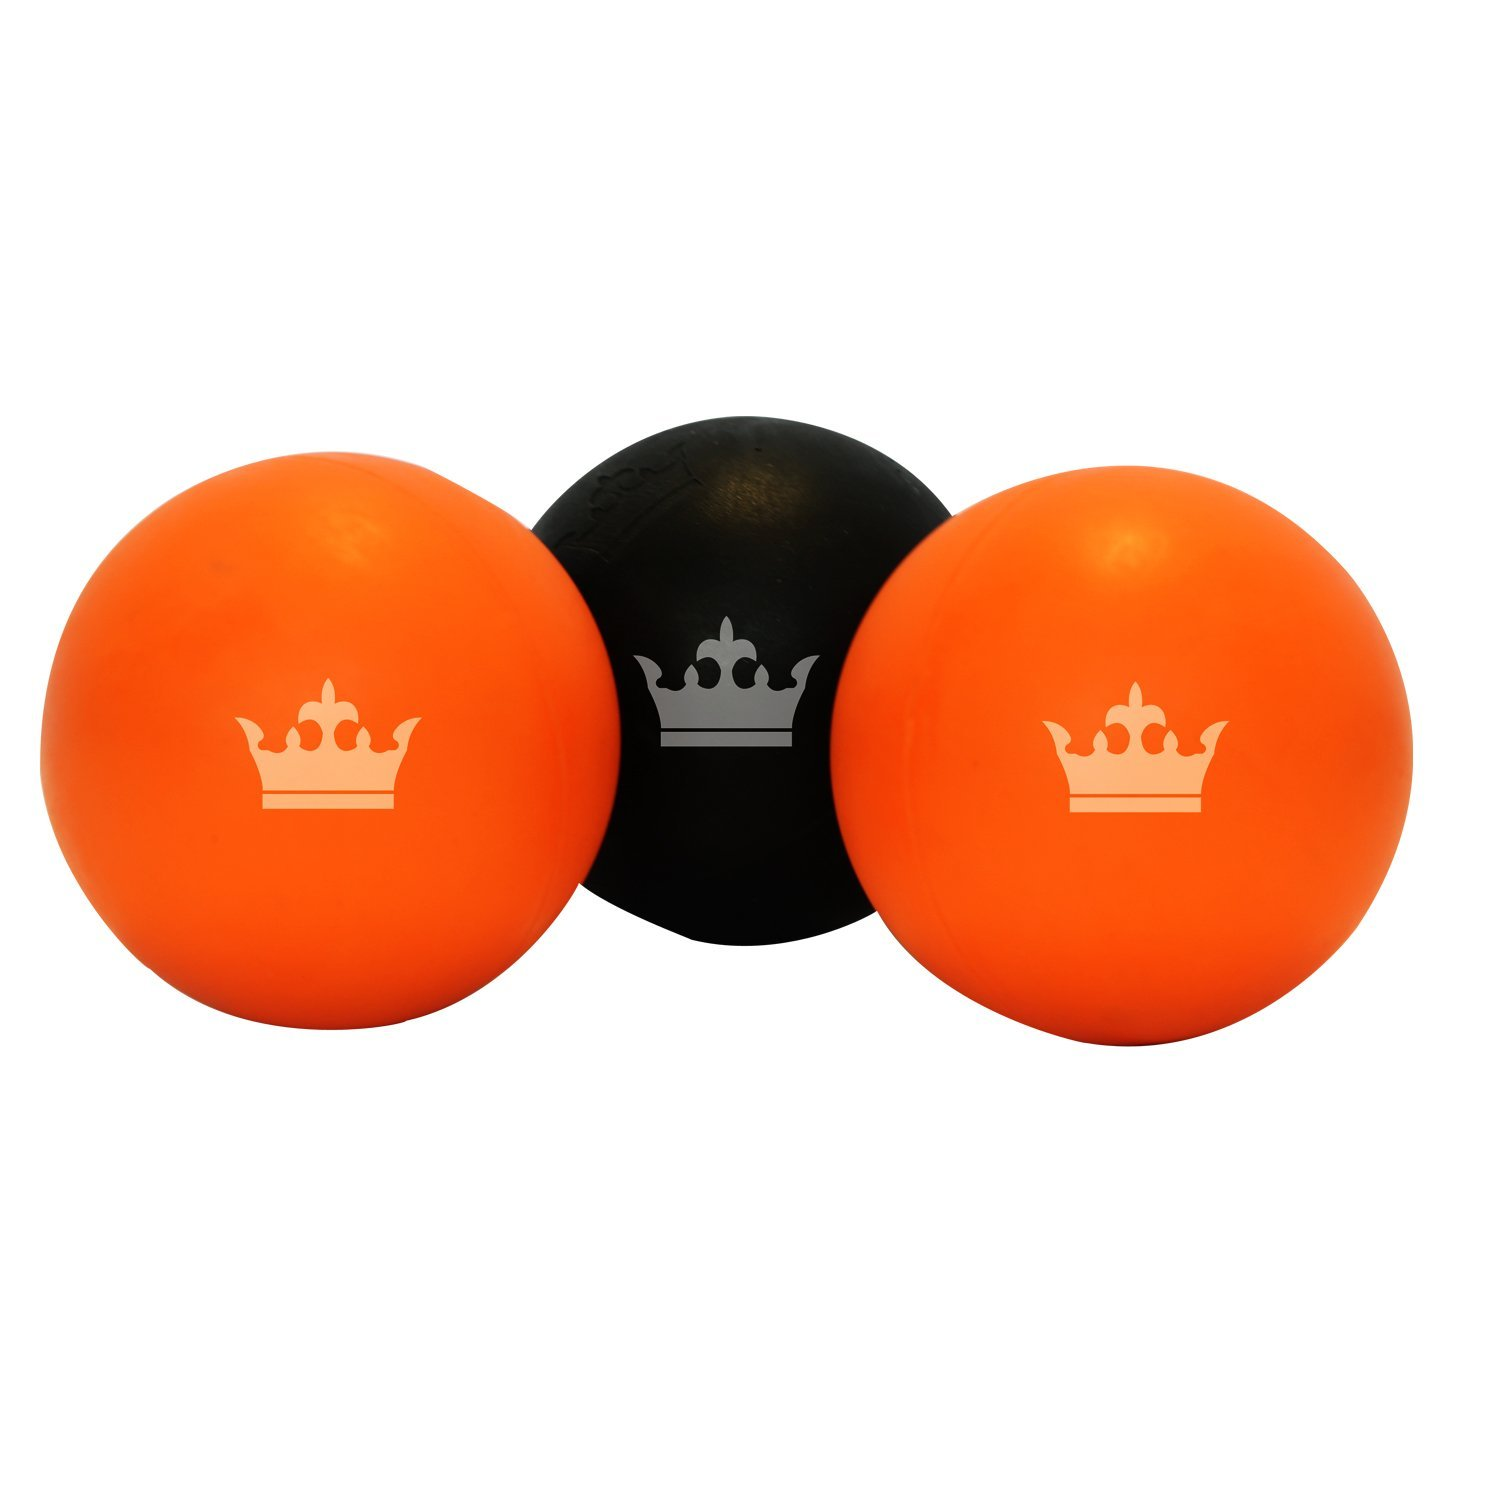 Using Muscle Roller Ball Set for Multiple Sclerosis (MS) #kingathletic